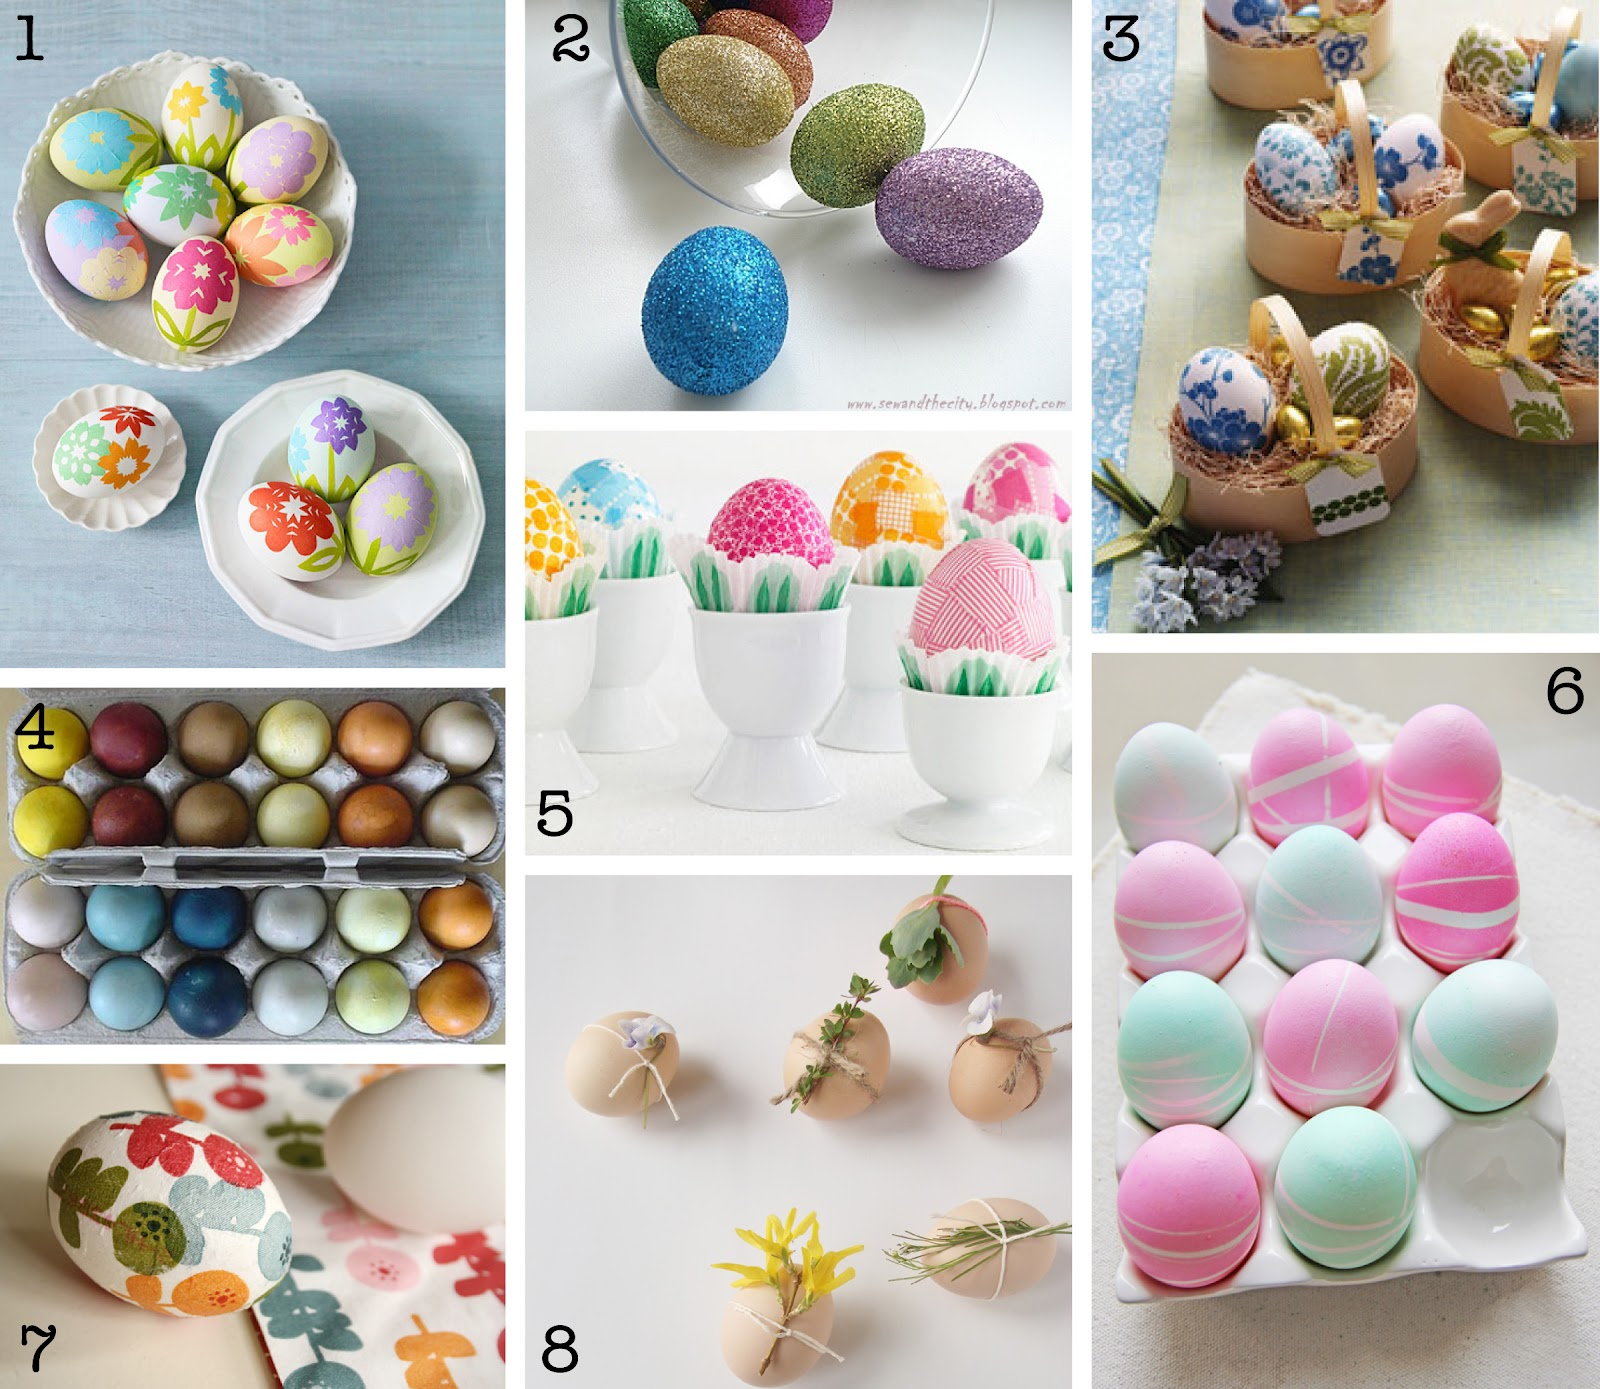 The creative place diy easter egg decorating roundup for Diy easter room decor